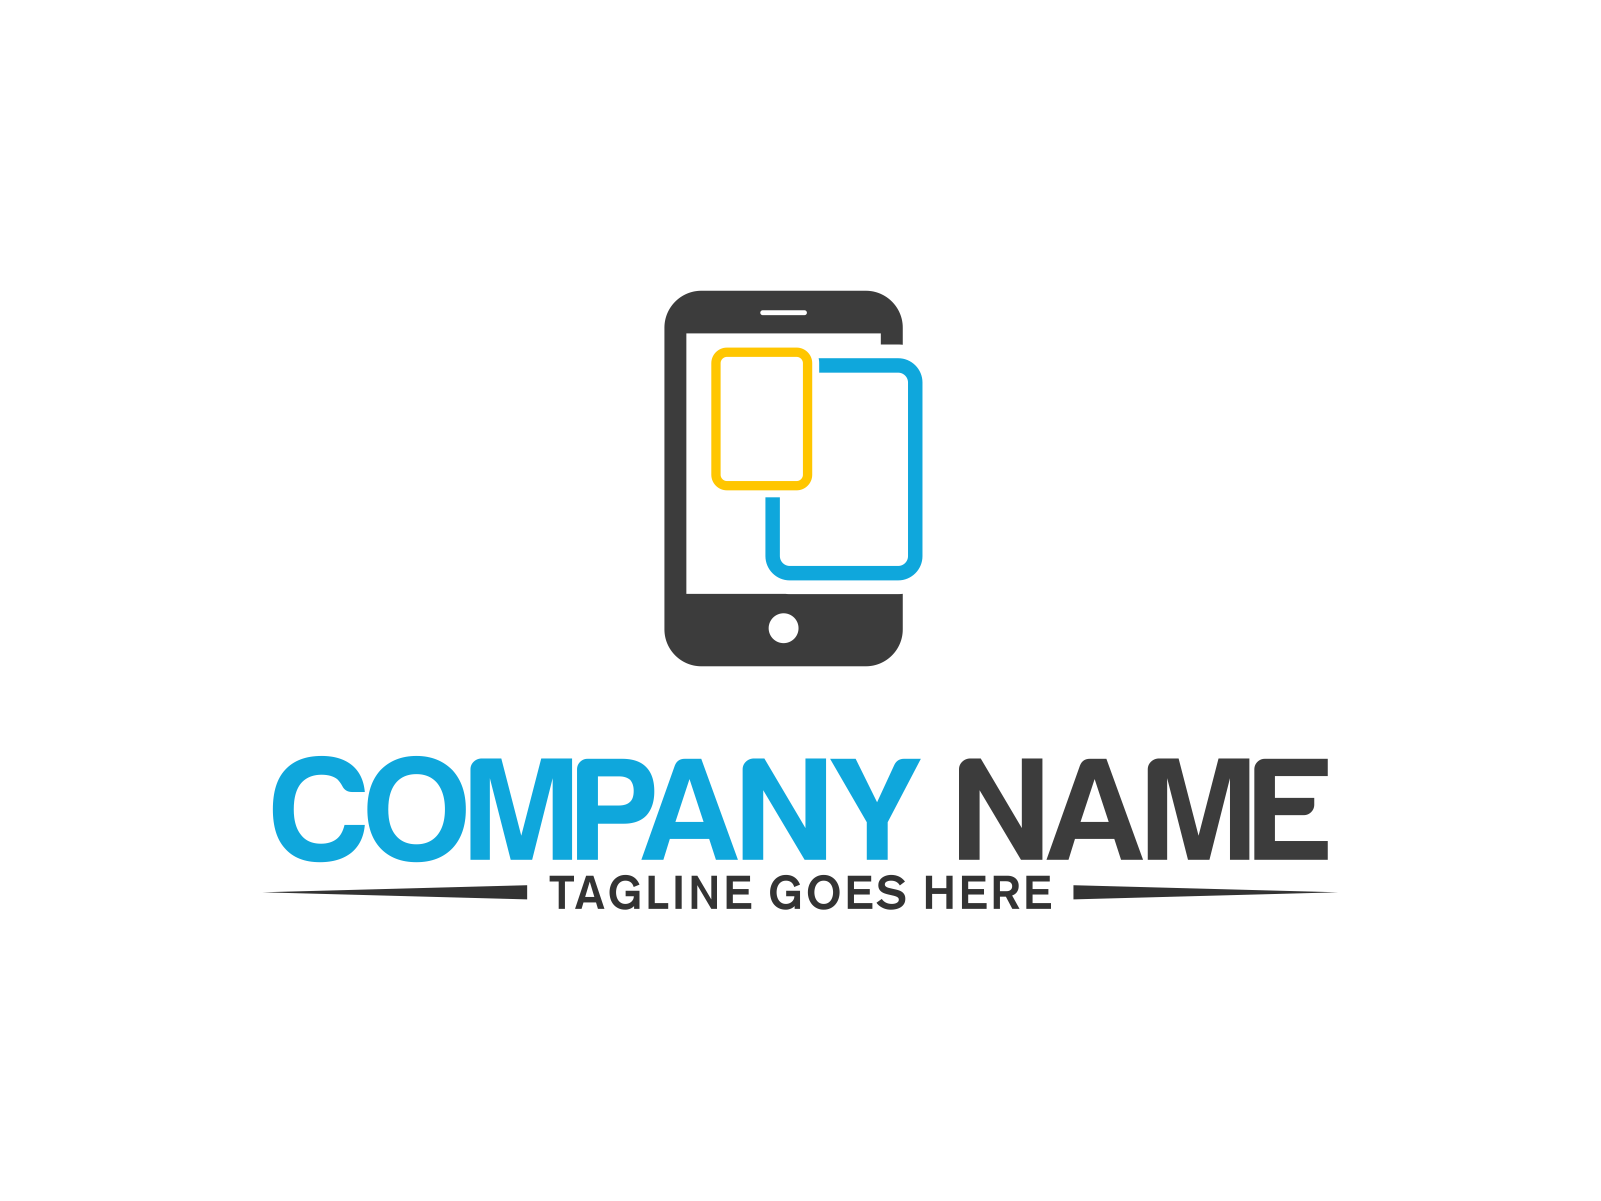 Mobile Phone by Meremelek  a perfect logo for Technology